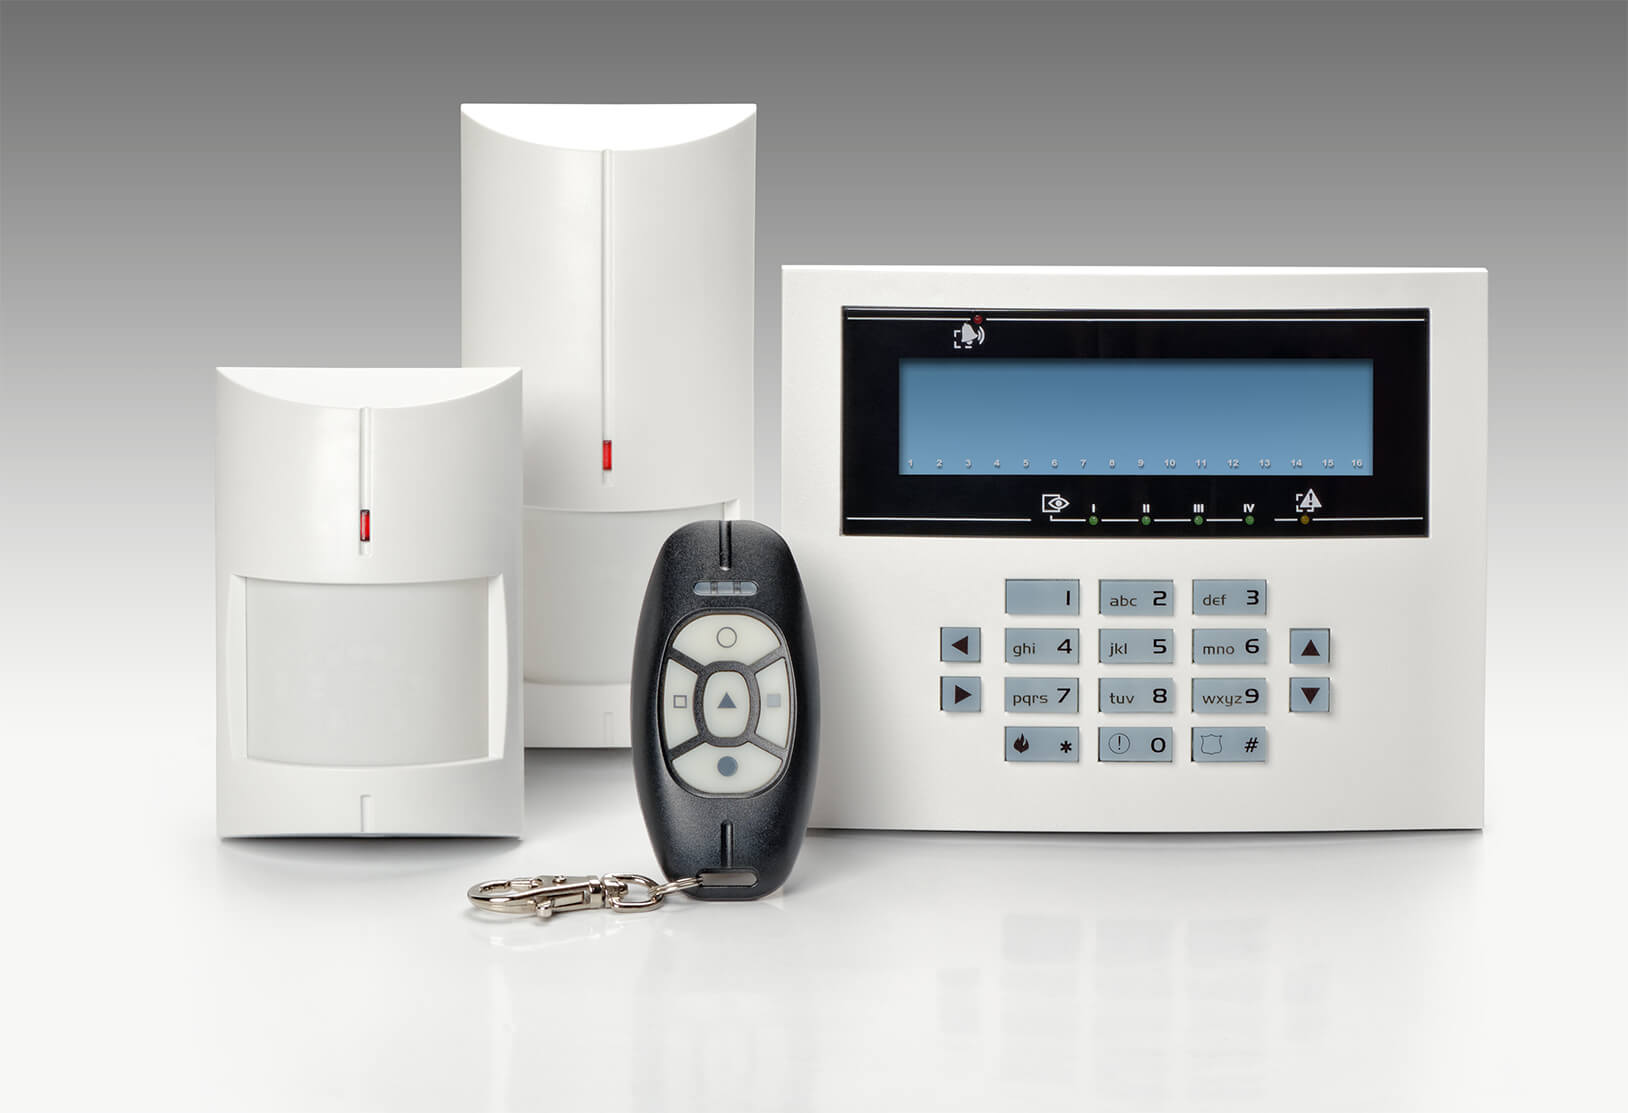 Commercial Burglar Alarms For Business in Chelsea SW10  - Local Chelsea SW10 burglar alarm company.Call 02078872244 - Dedicated to Safety & Security. Companies, shops and homes ..